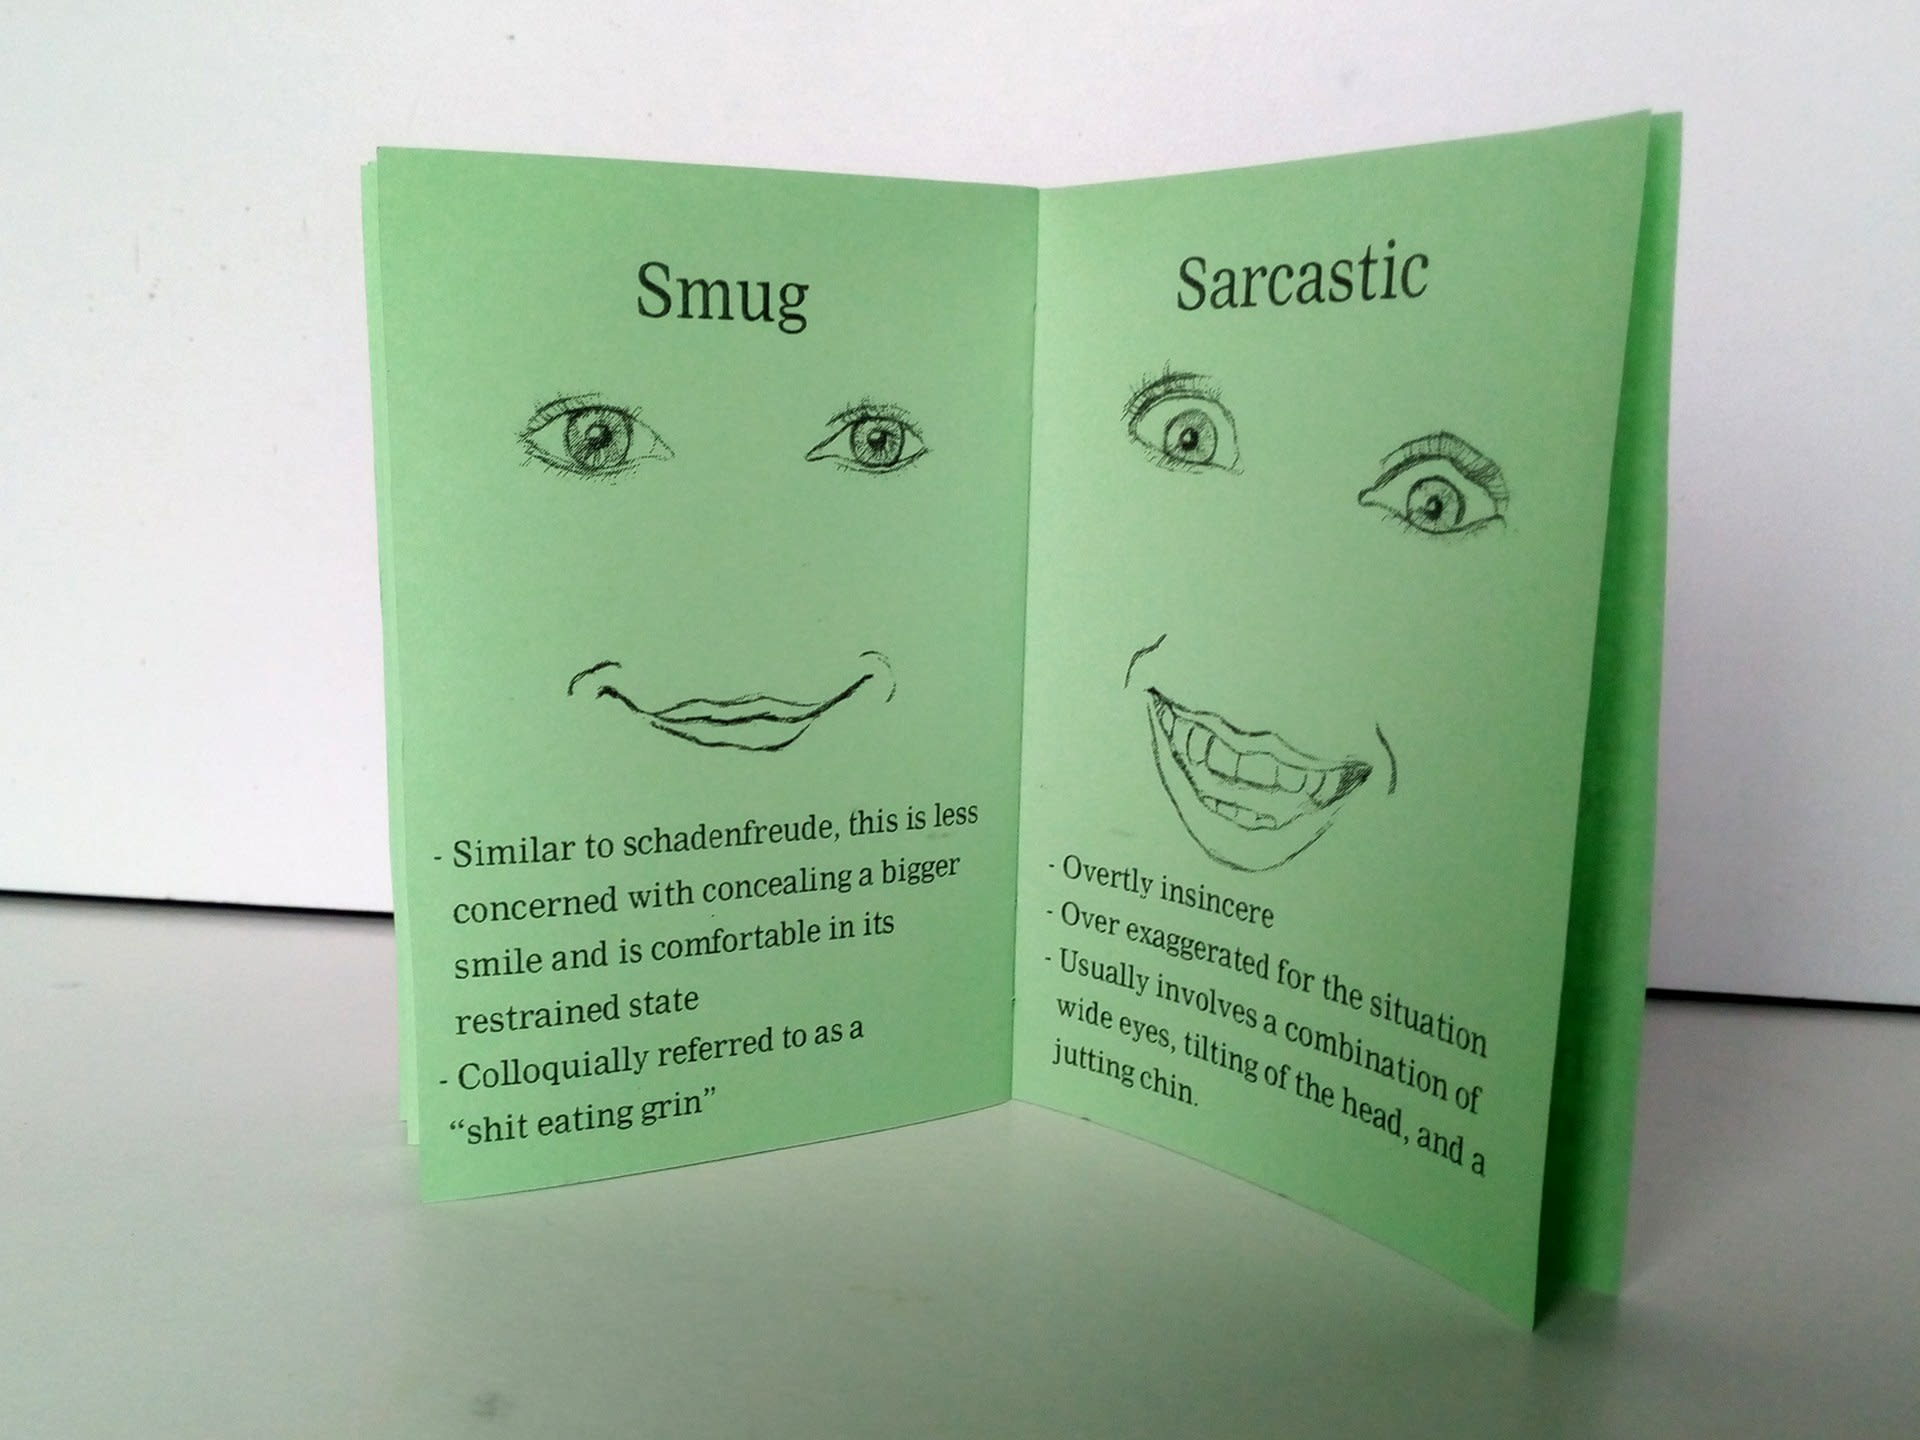 Smiles: A Brief Reference Guide (detail)